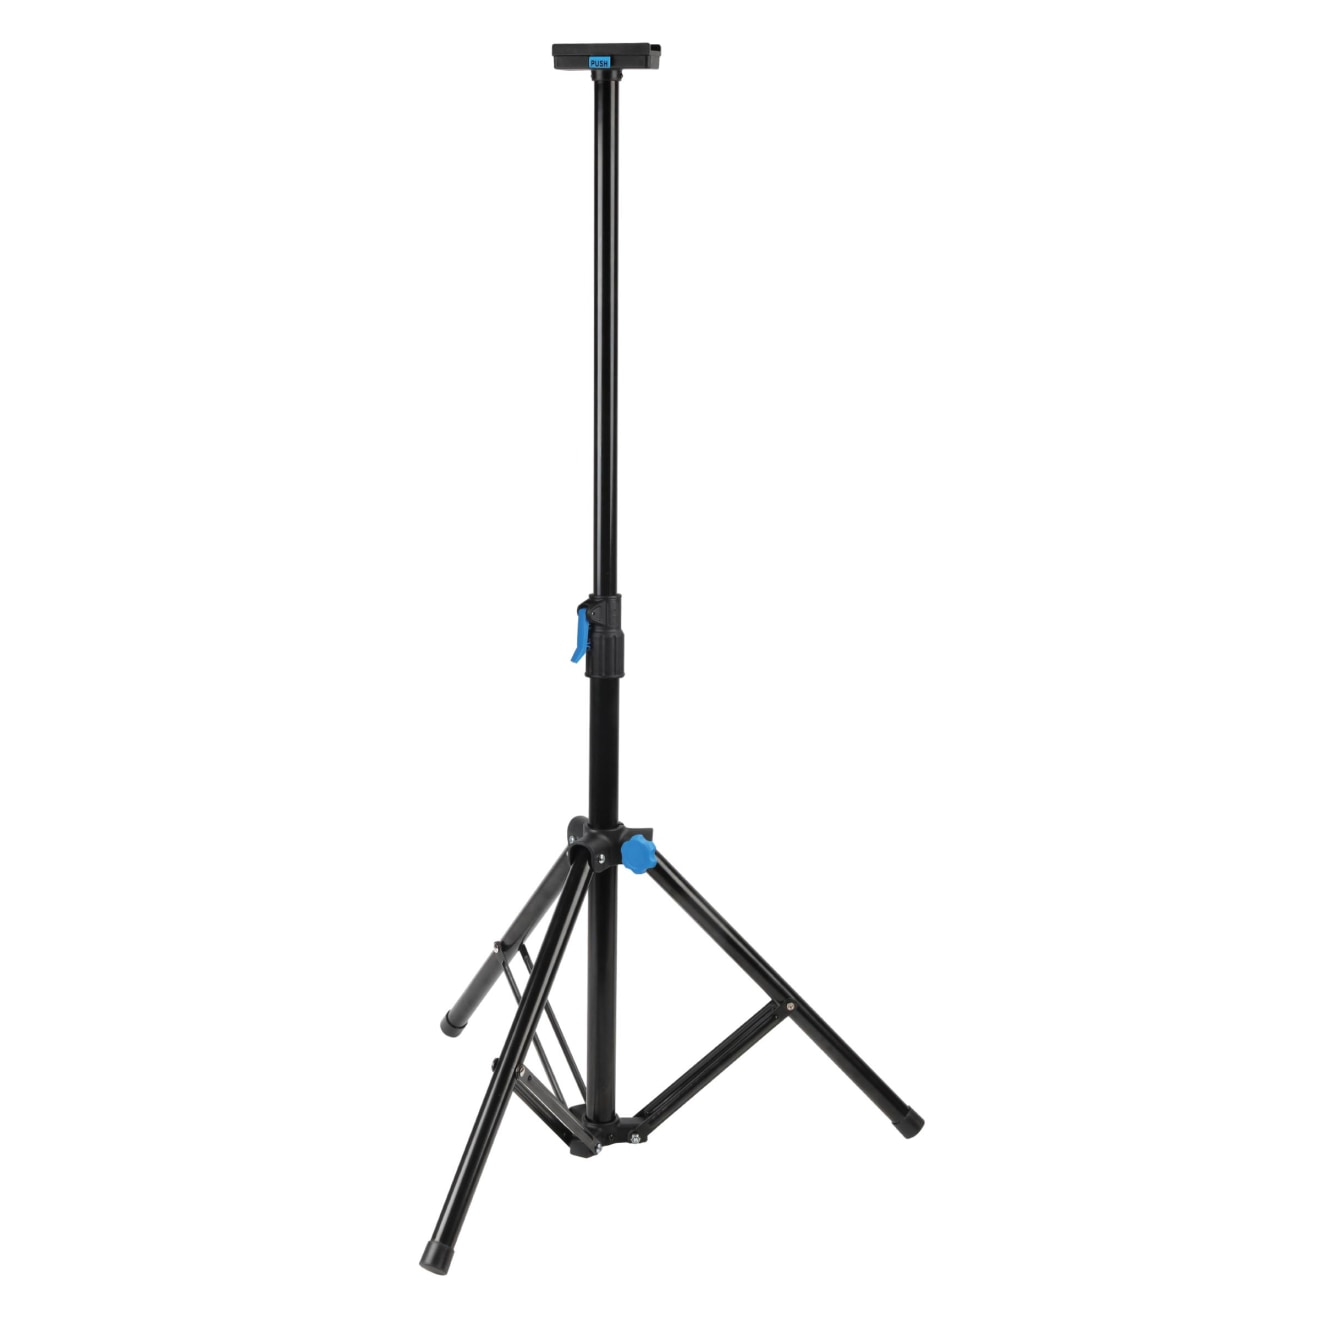 Odyn Compact Foldable Tripod for Work Light